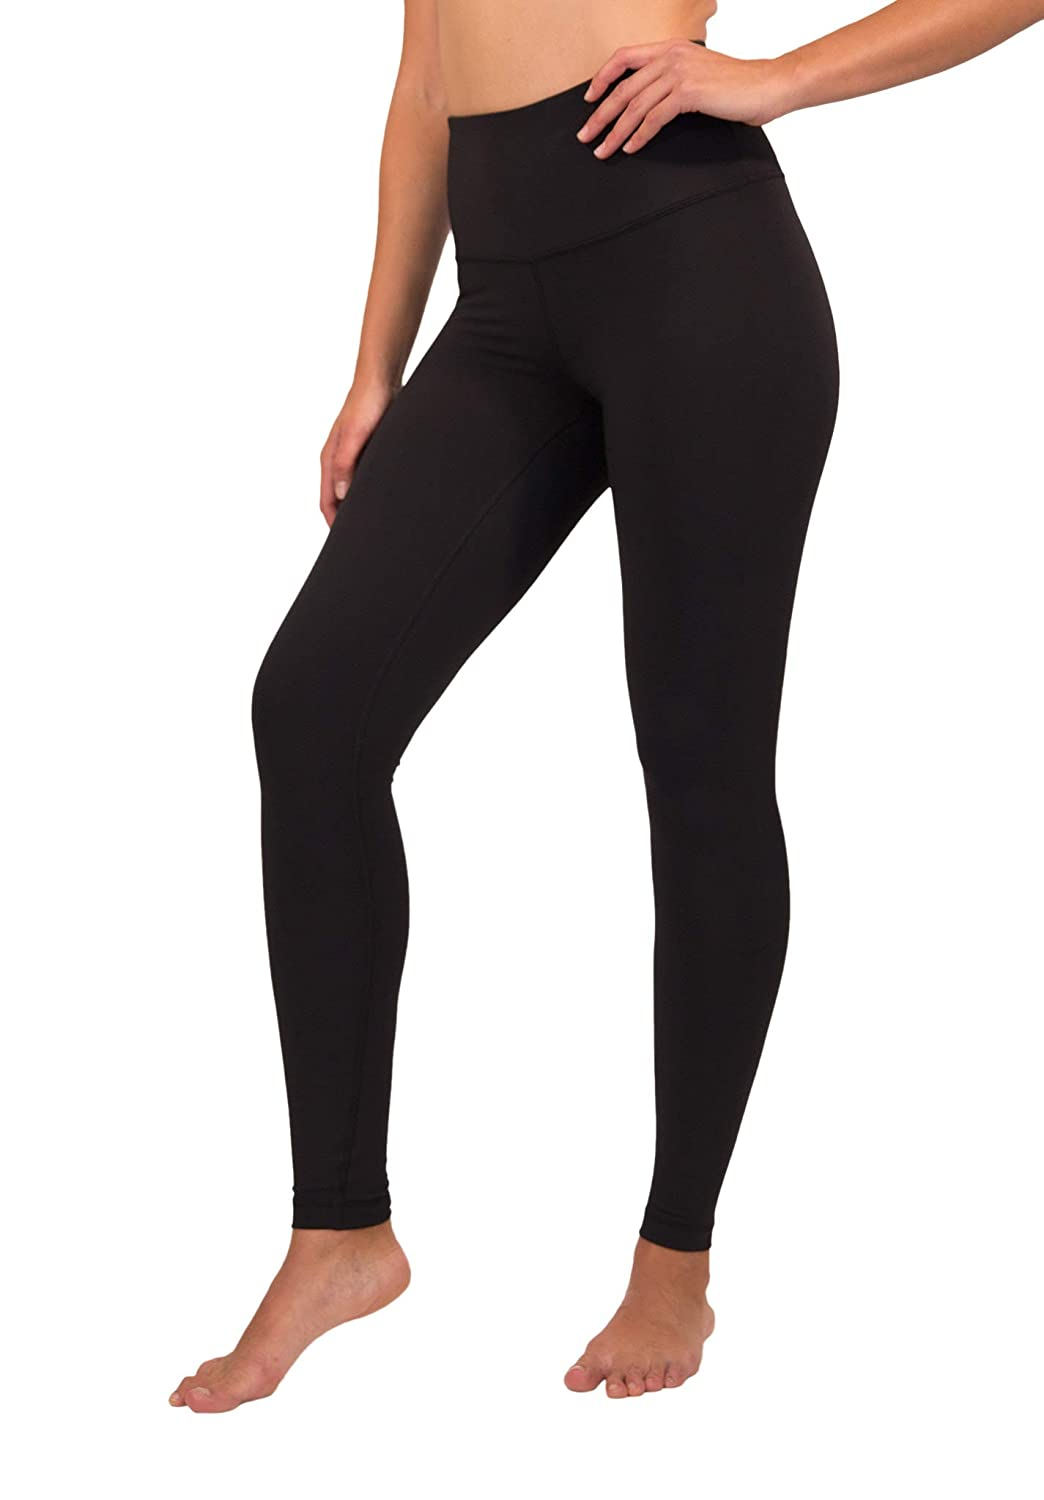 e60295641a424d 90 Degree By Reflex High Waist Squat Proof Interlink Leggings for Women at  Amazon Women's Clothing store: